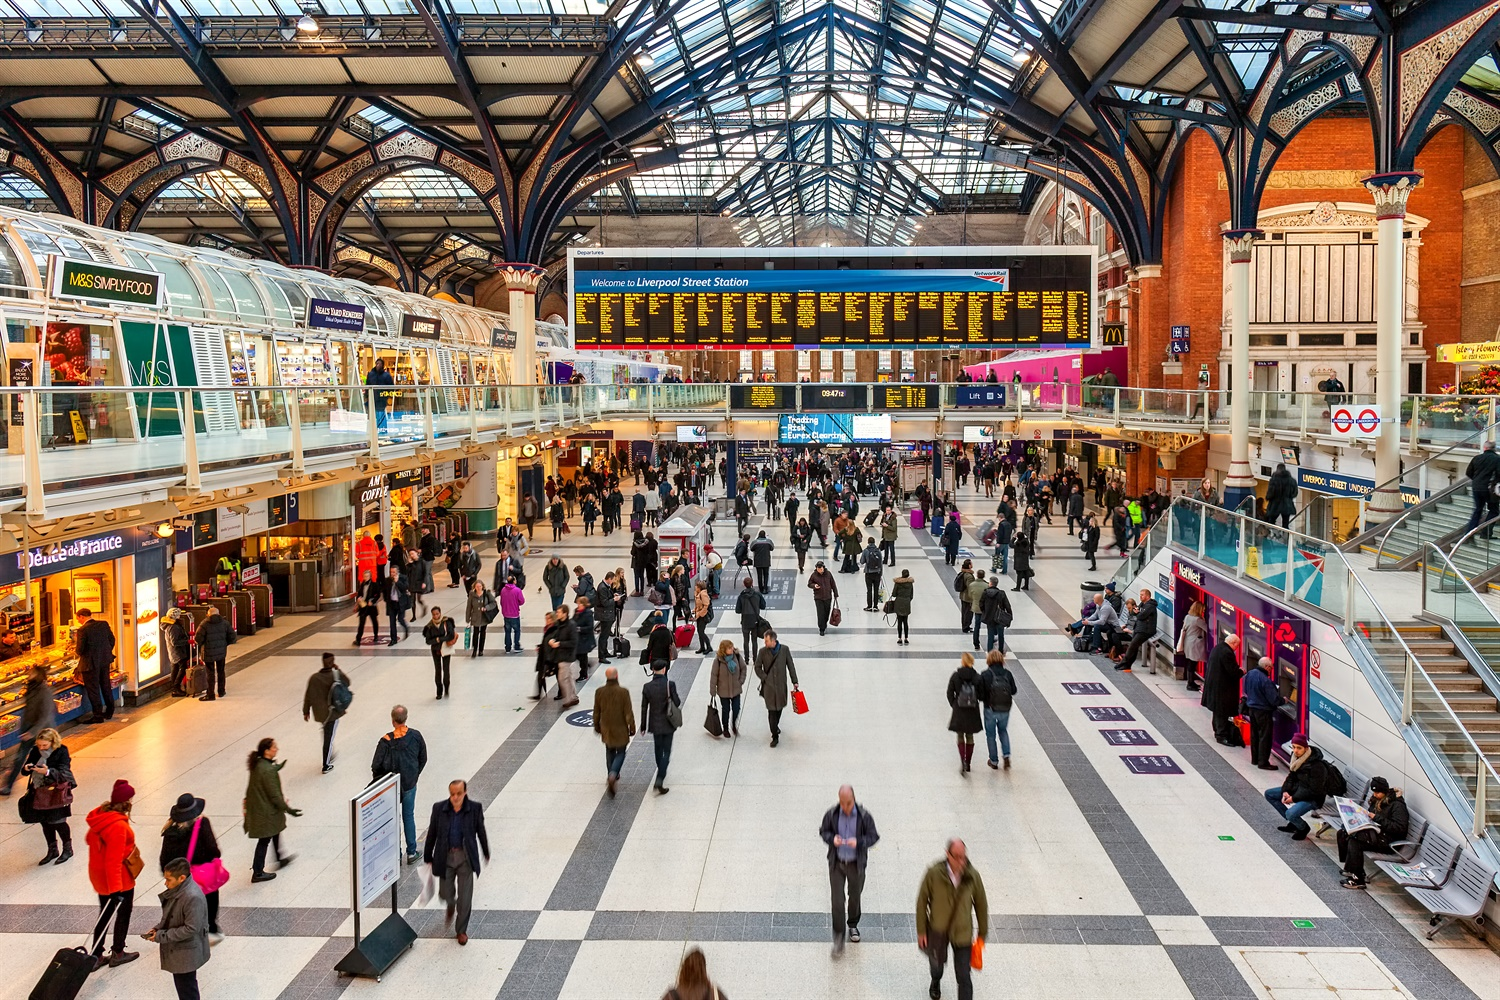 Developing London's stations key to catering for population growth